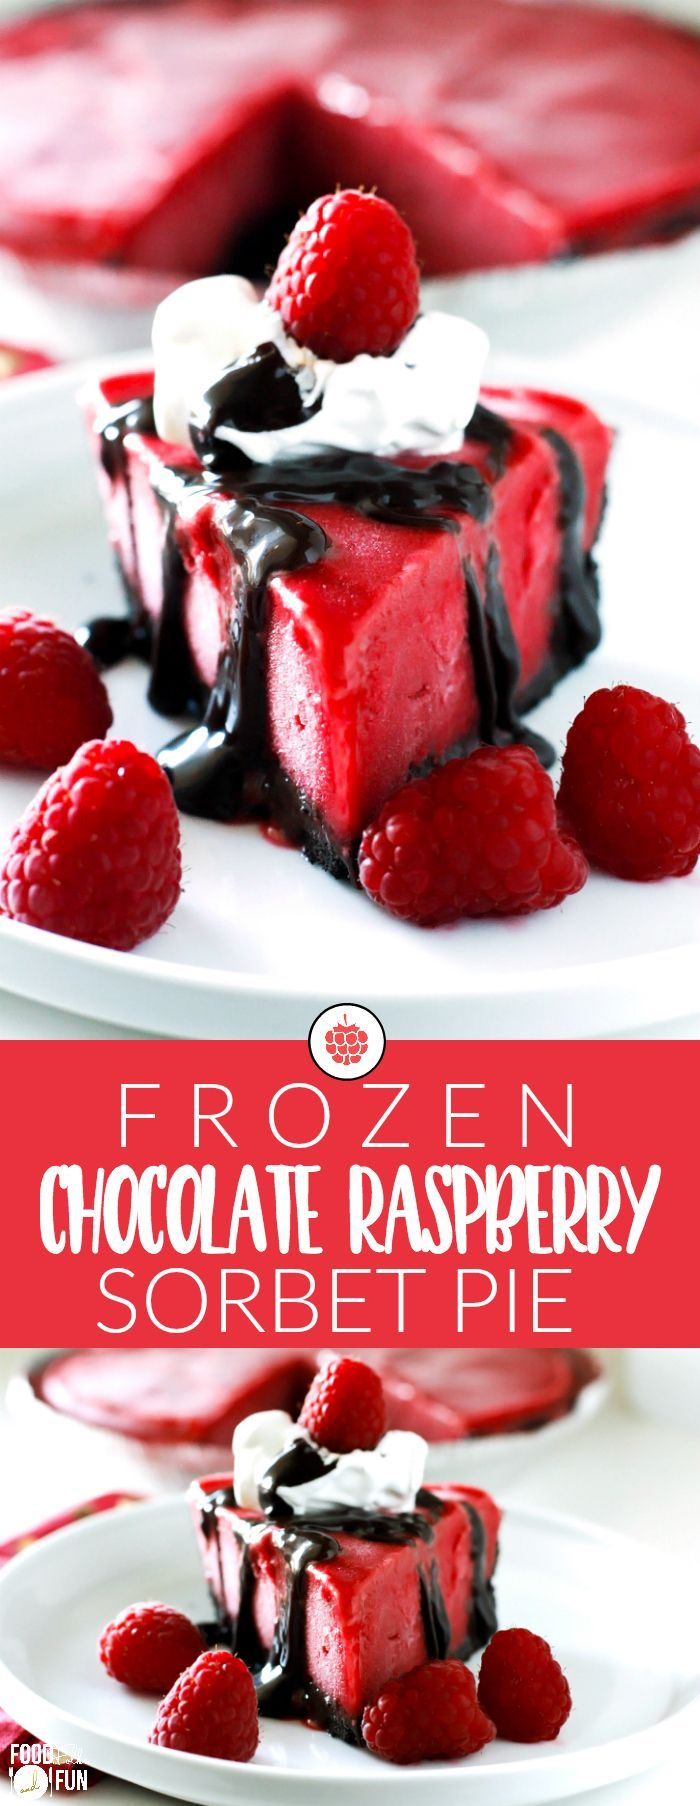 Oreo cookie crust, rich hot fudge, and luscious raspberry sorbet pair perfectly to make this Frozen Chocolate Raspberry Pie truly divine! | Raspberry Dessert | Summer Recipe | Summer Dessert | Easy Dessert | Frozen Dessert